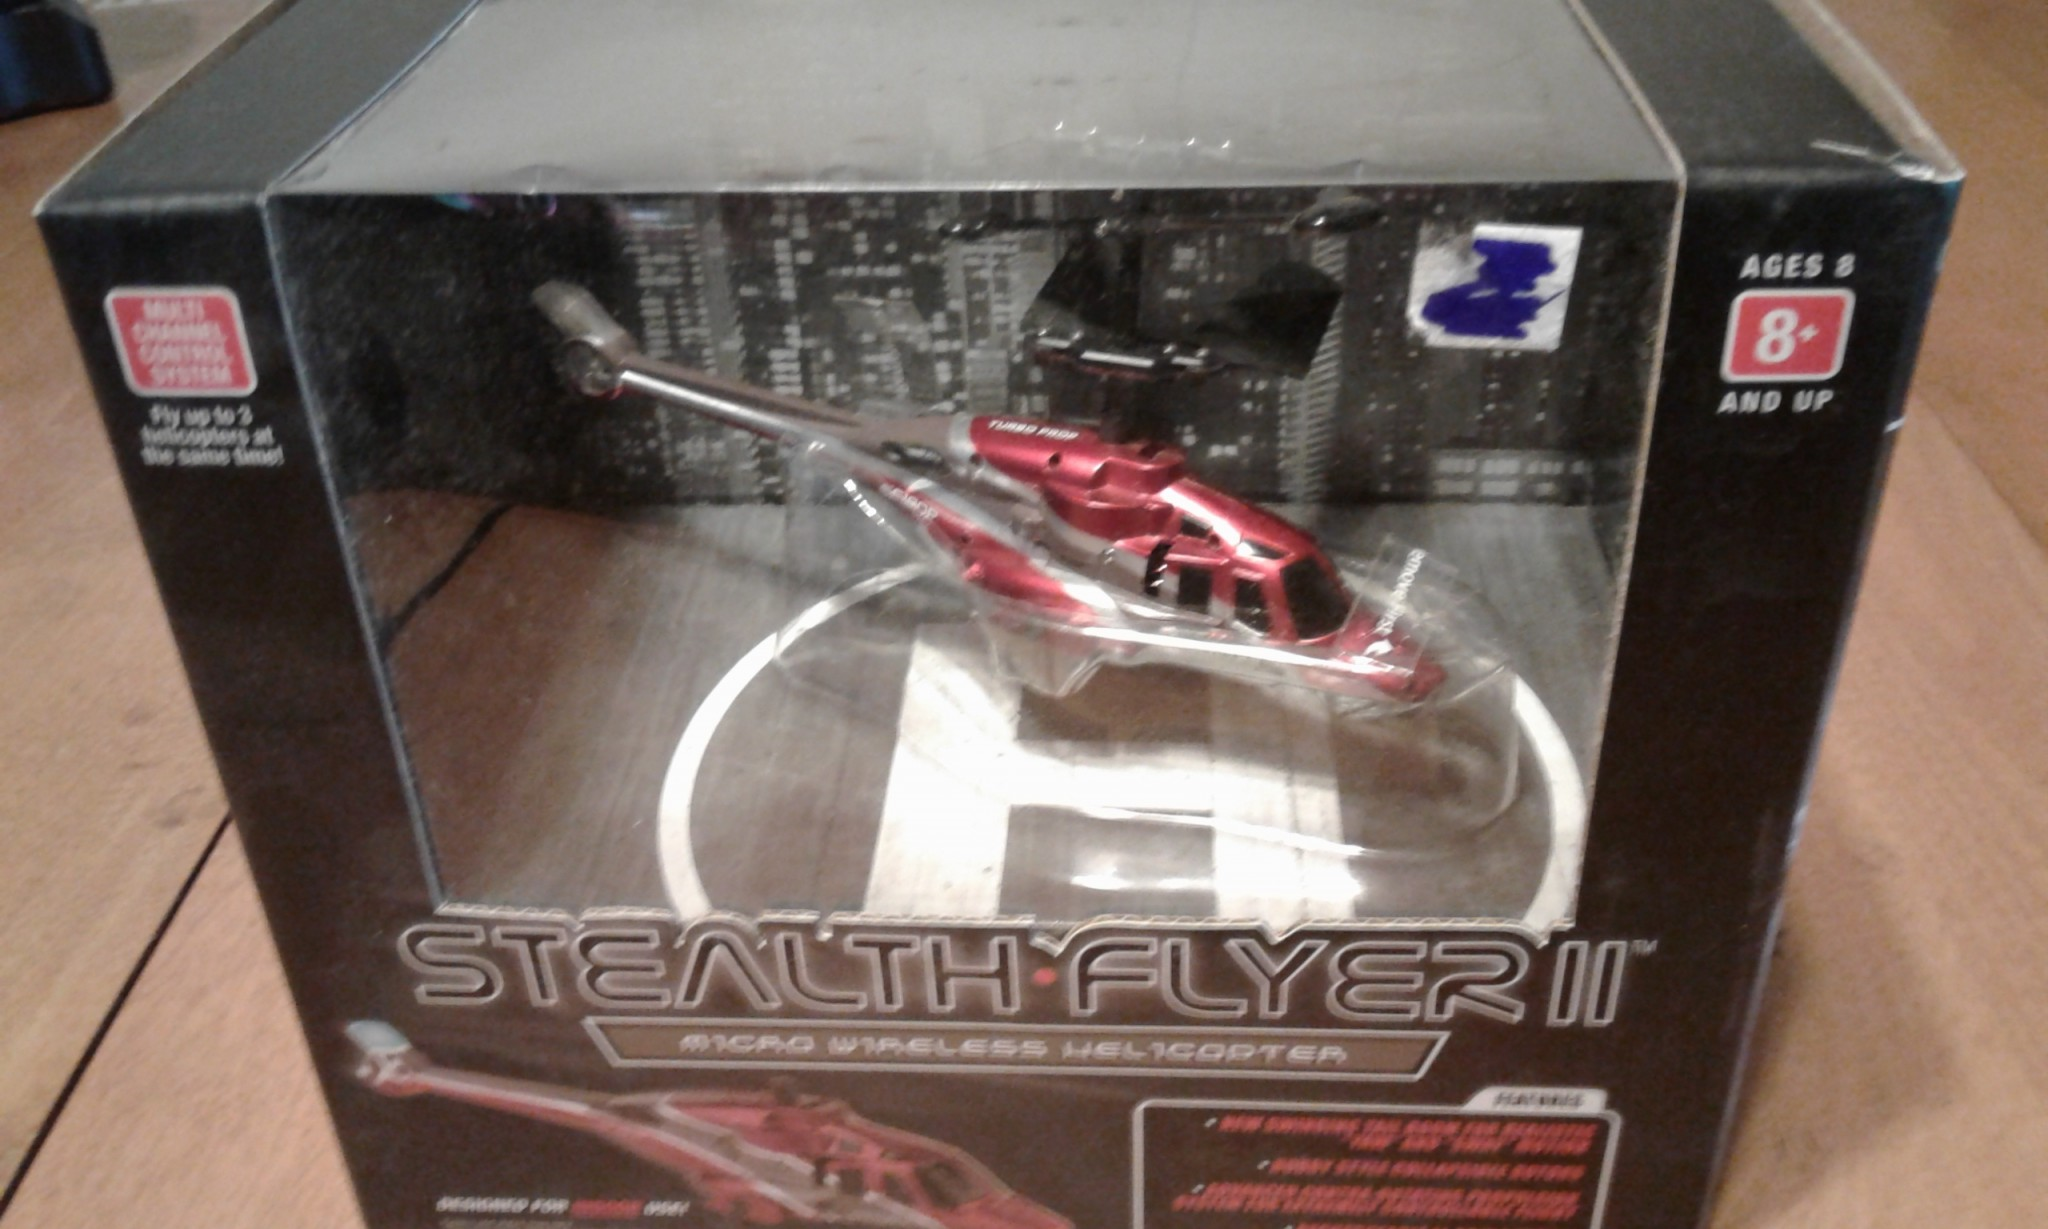 New STEALTH FLYER II Micro Wireless INDOOR Helicopter PROPEL R/C 80' Range LED